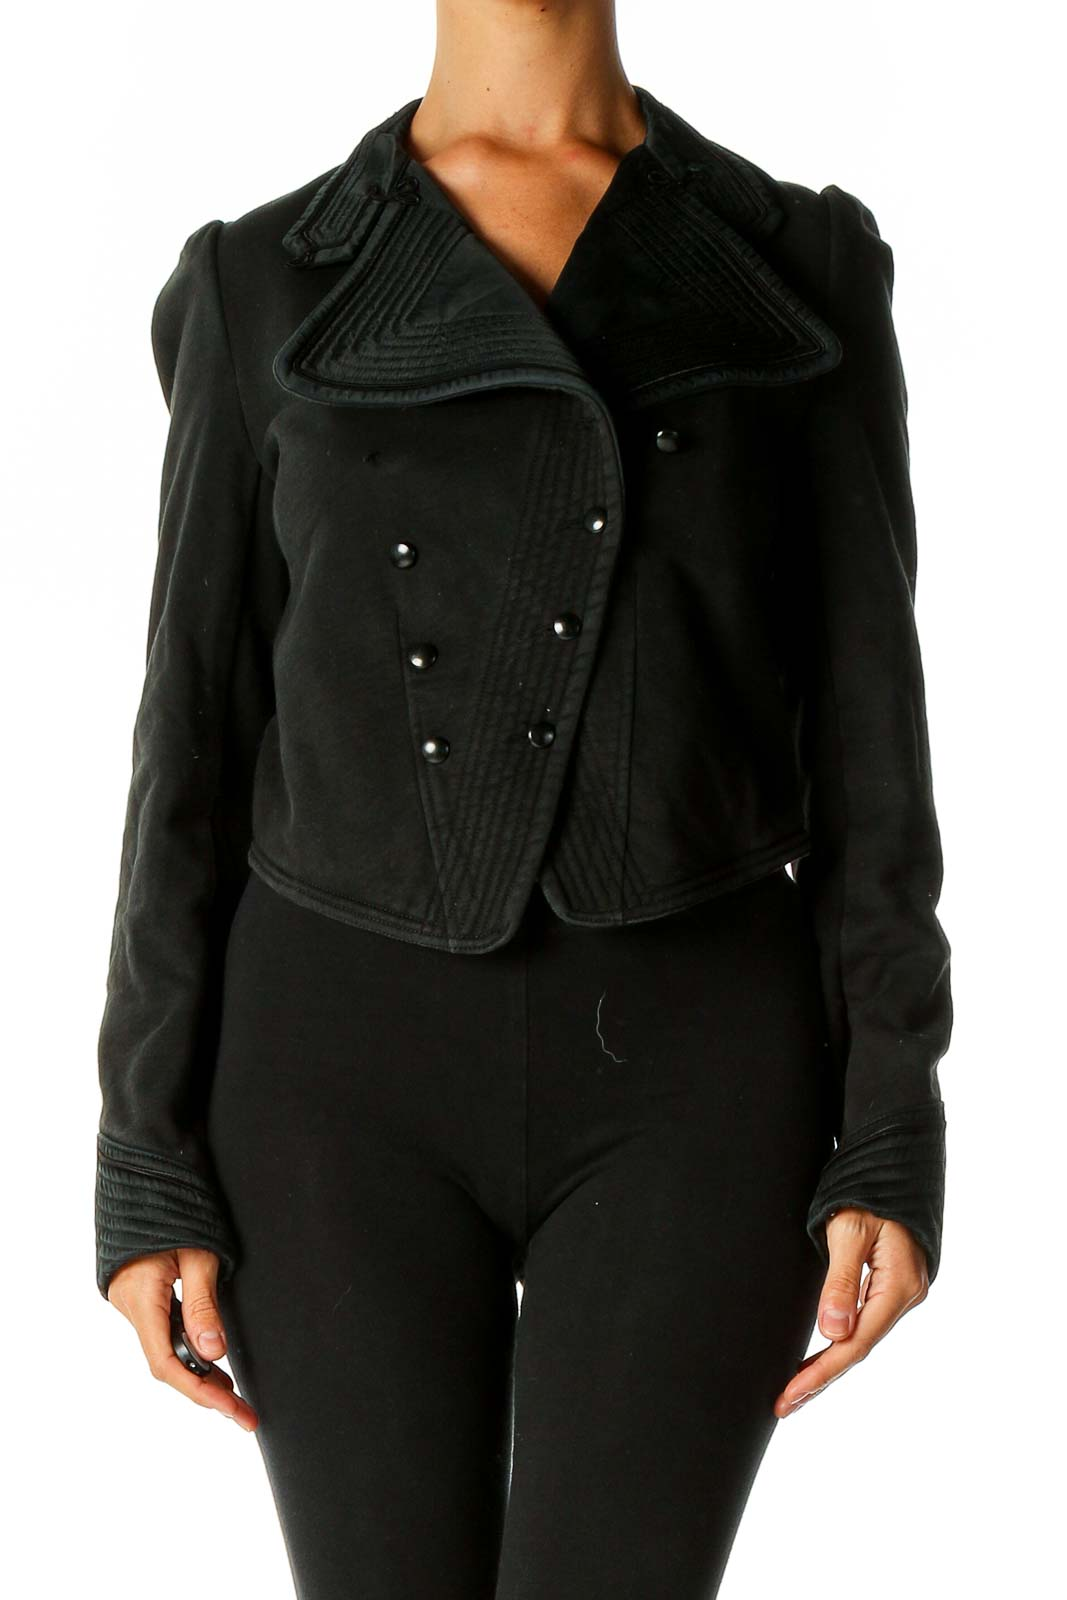 Black Military Jacket Front